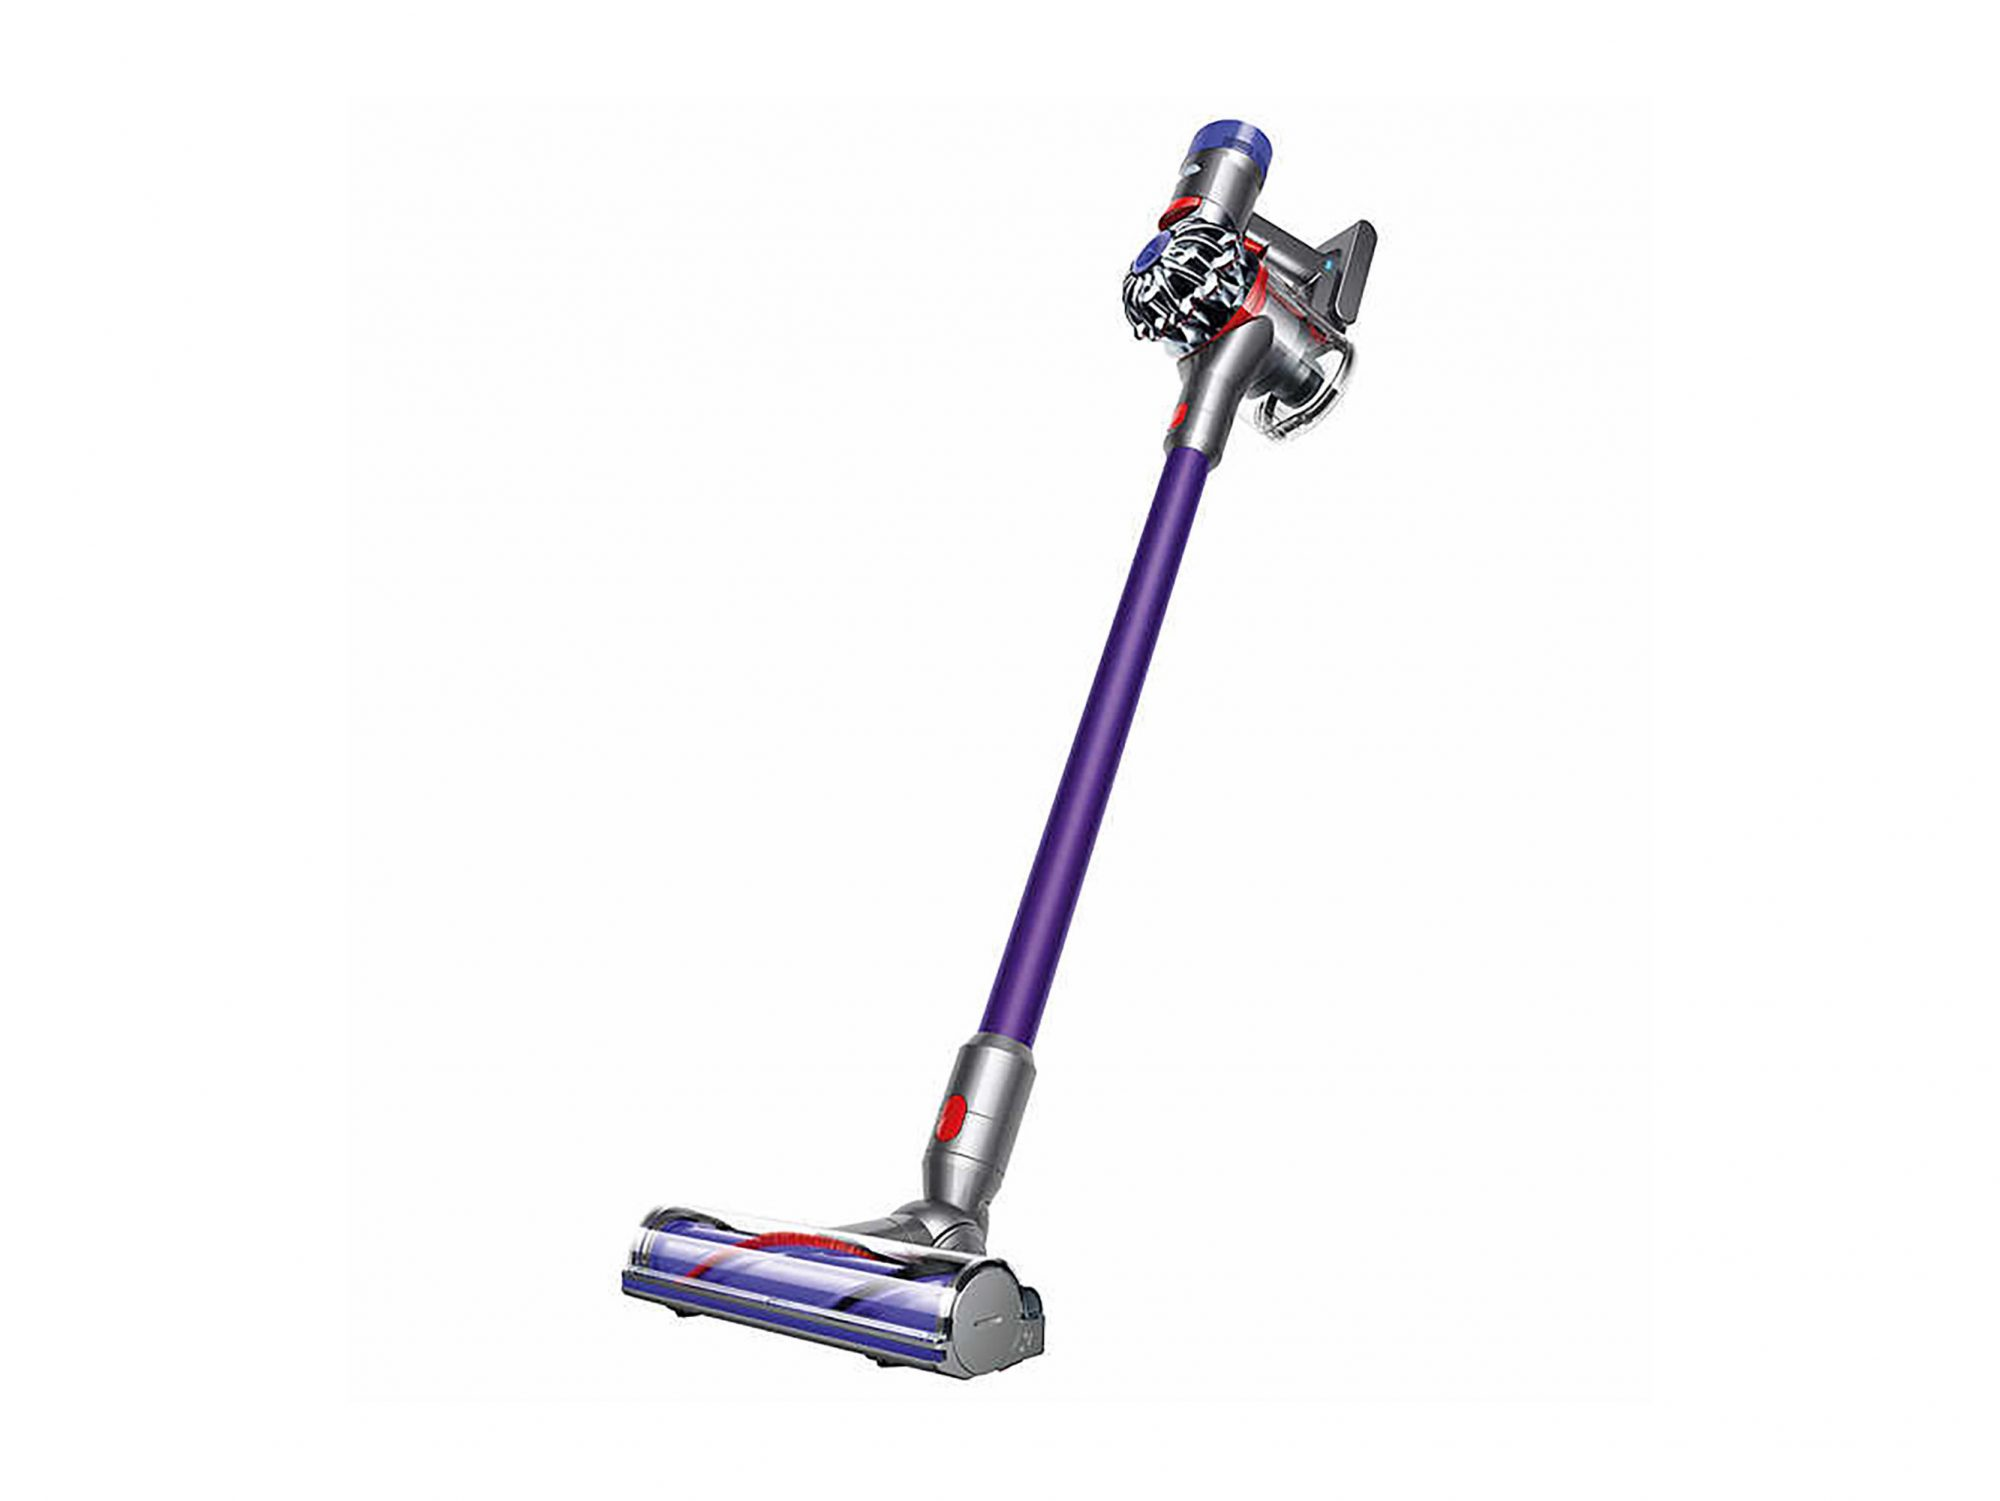 5 Sale Items Every Costco Member Should Buy in February 1810w-Dyson-Vaccum